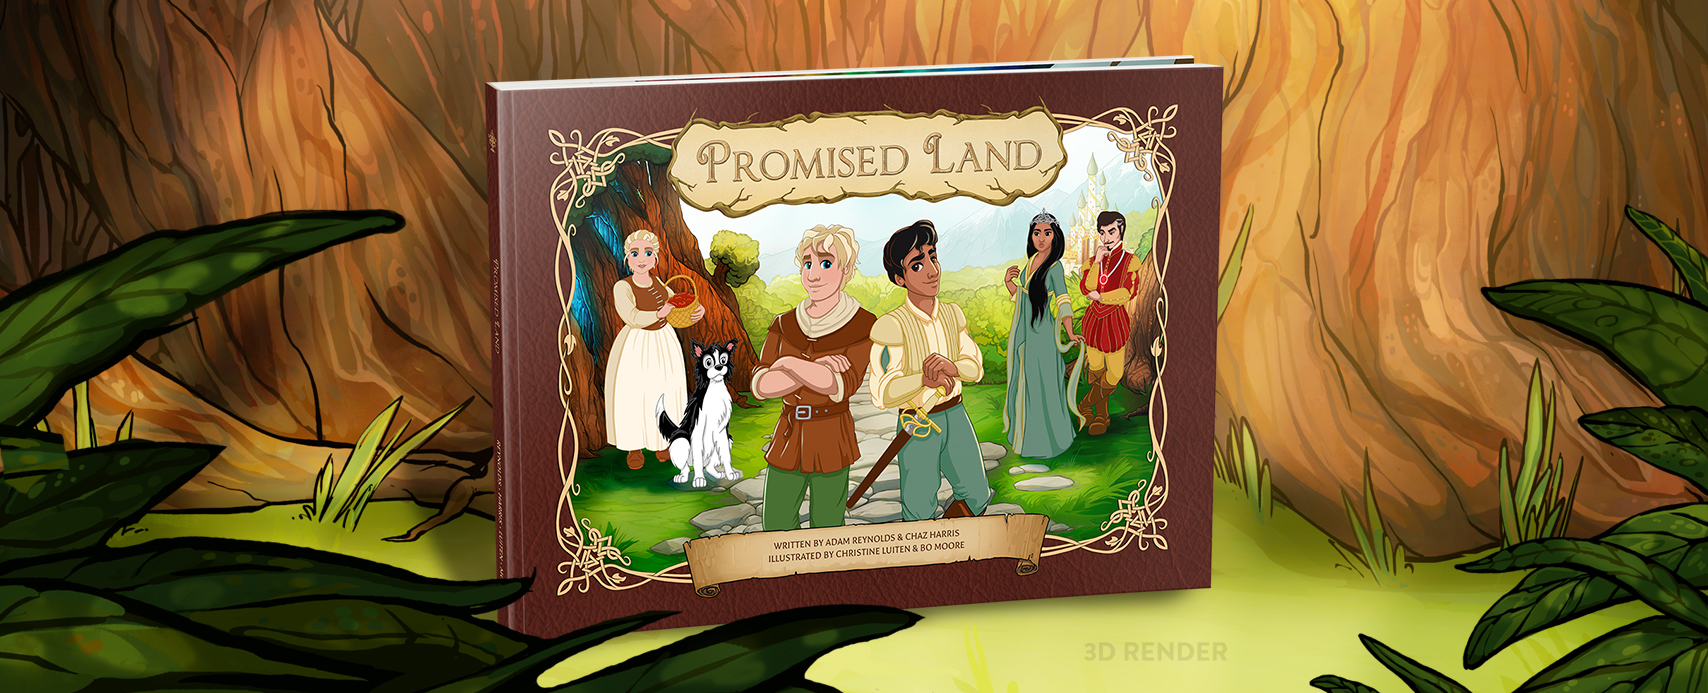 Promised Land Tales - Adam Reynolds